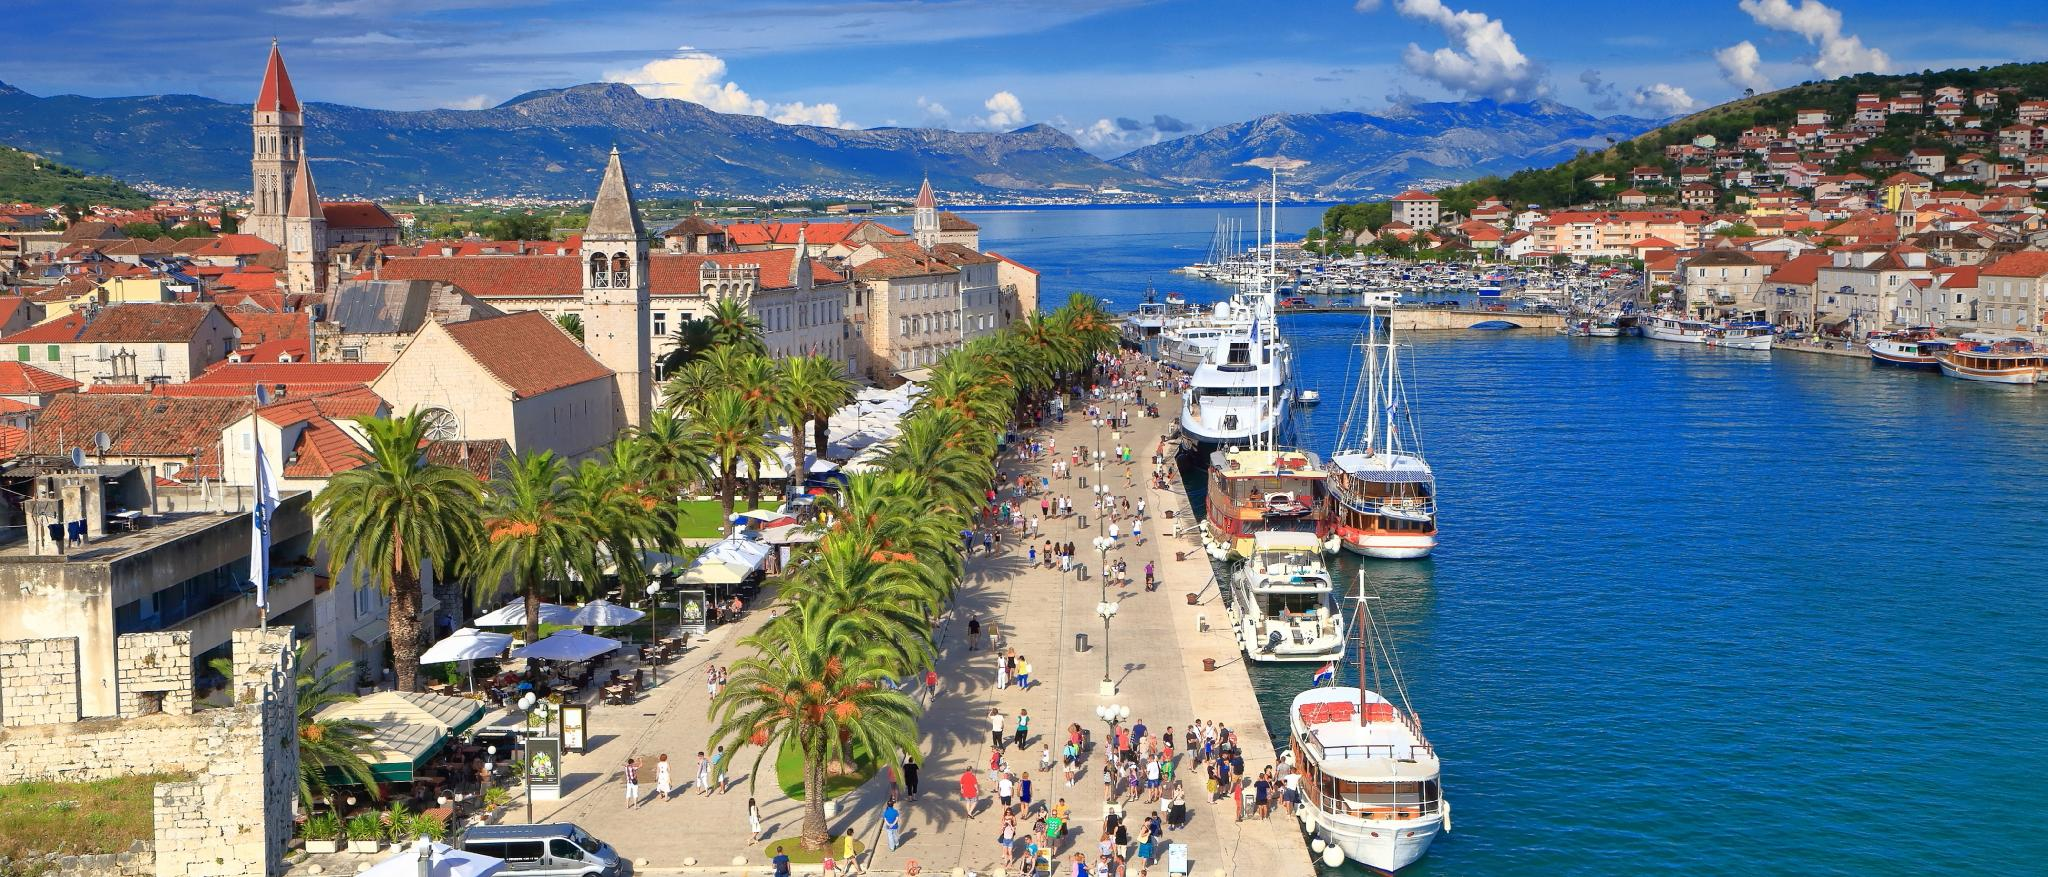 Easter Wallpaper Hd 10 Best Trogir Hotels Hd Photos Reviews Of Hotels In